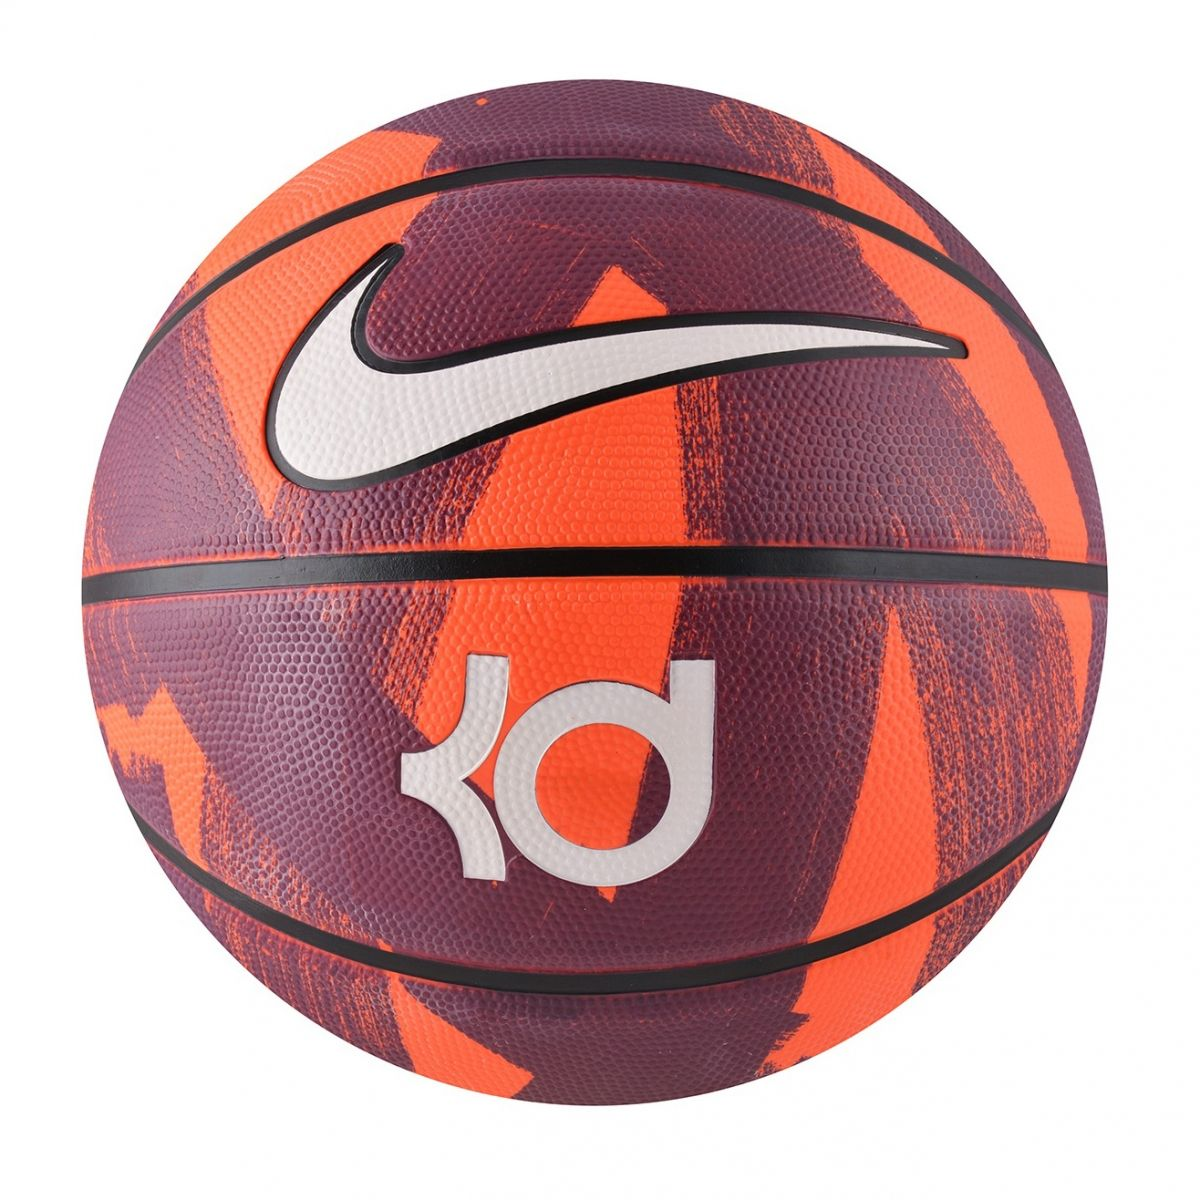 kd basketball ball Kevin Durant shoes